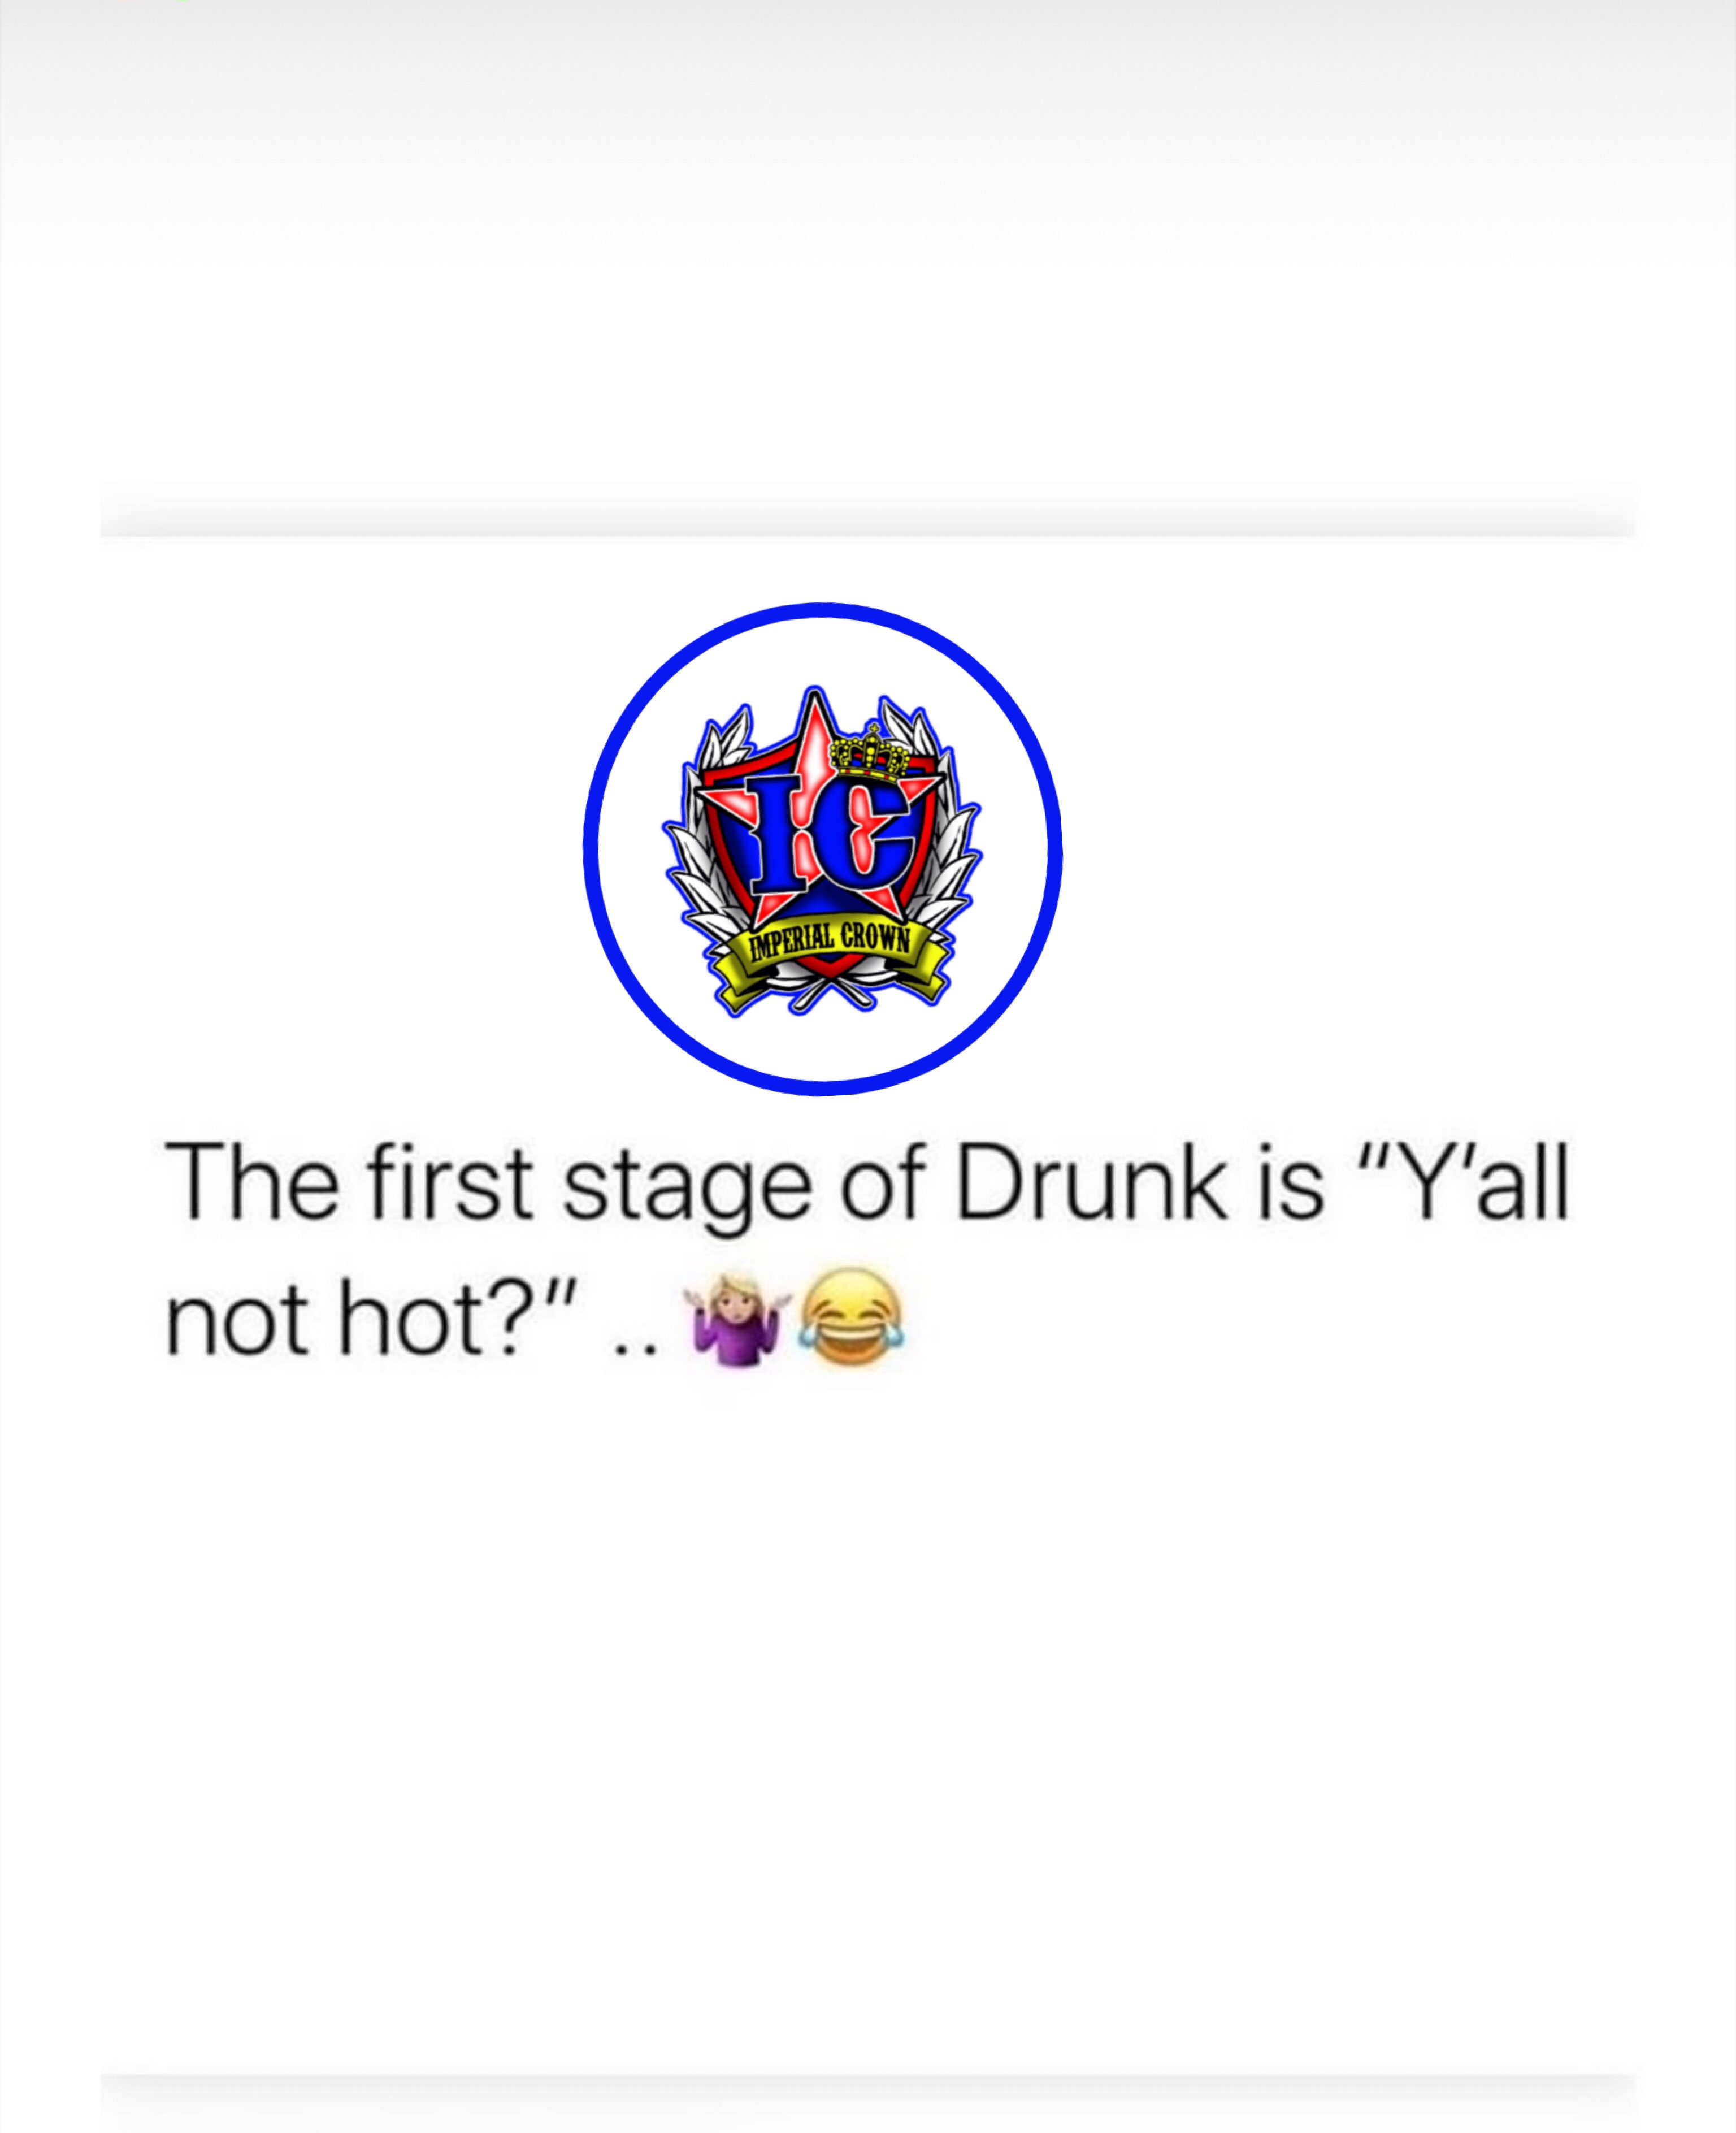 The first stage of drunk is y'all not hot